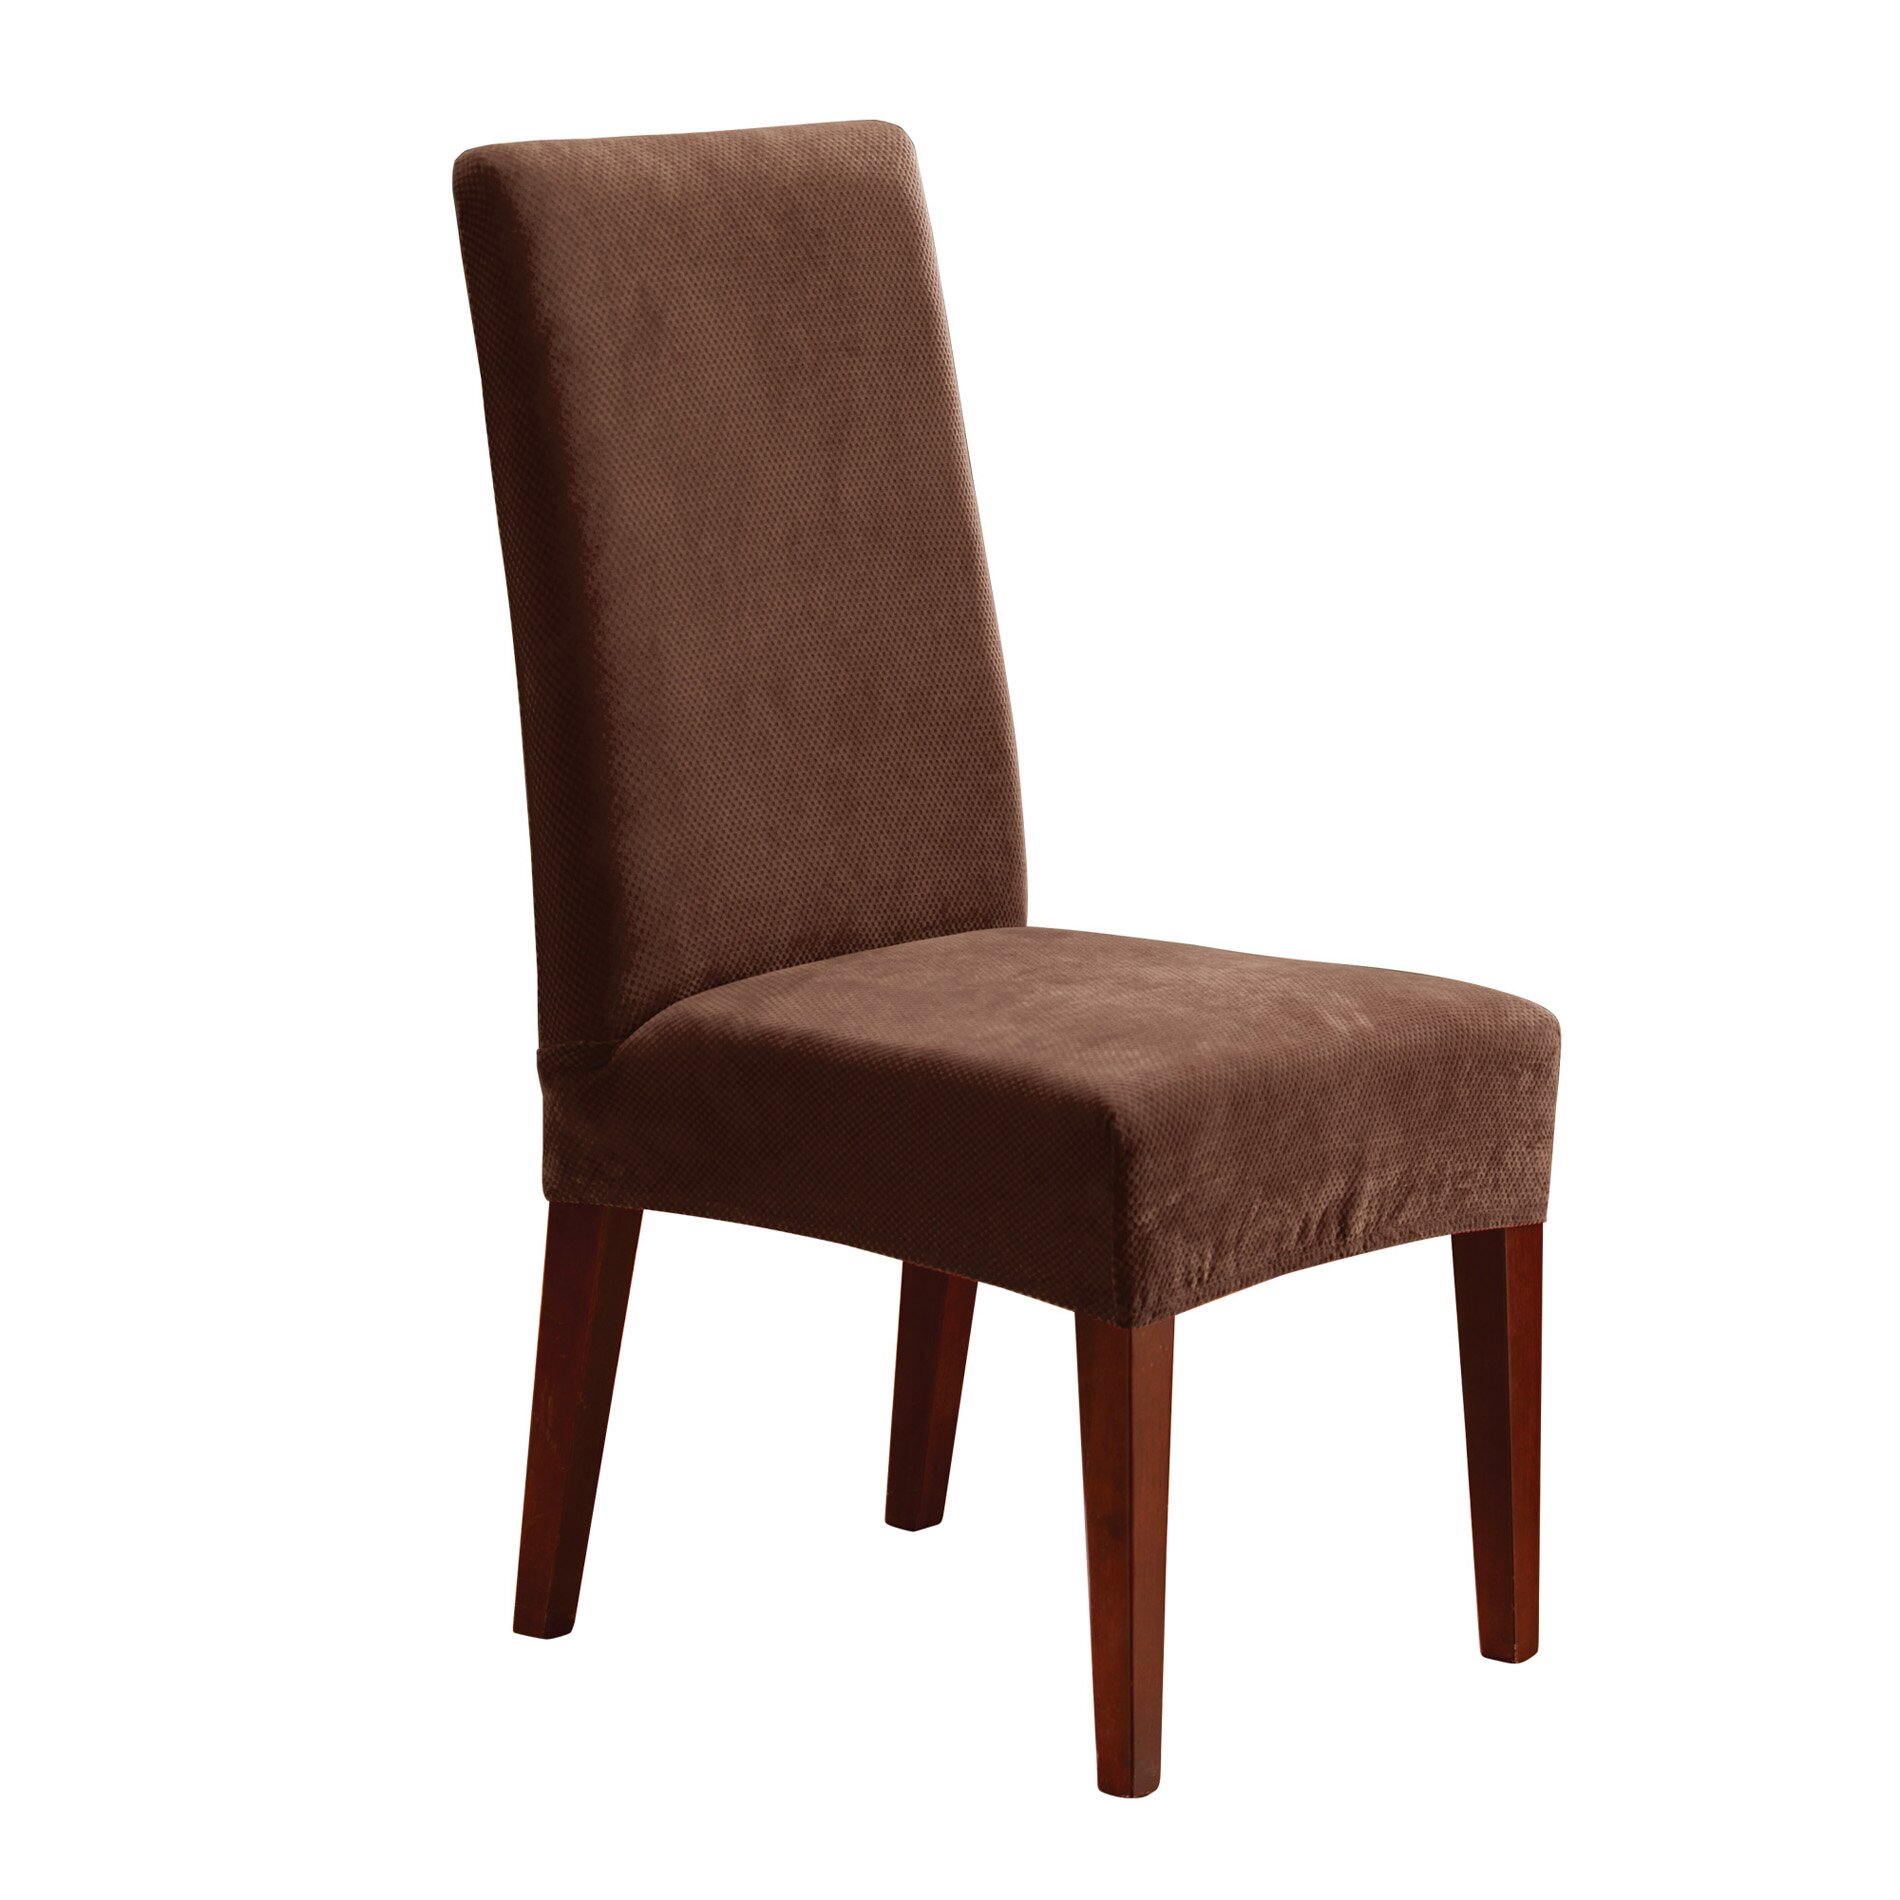 Subrtex Stretch Dining Room Chair Slipcovers4 Milky Knit